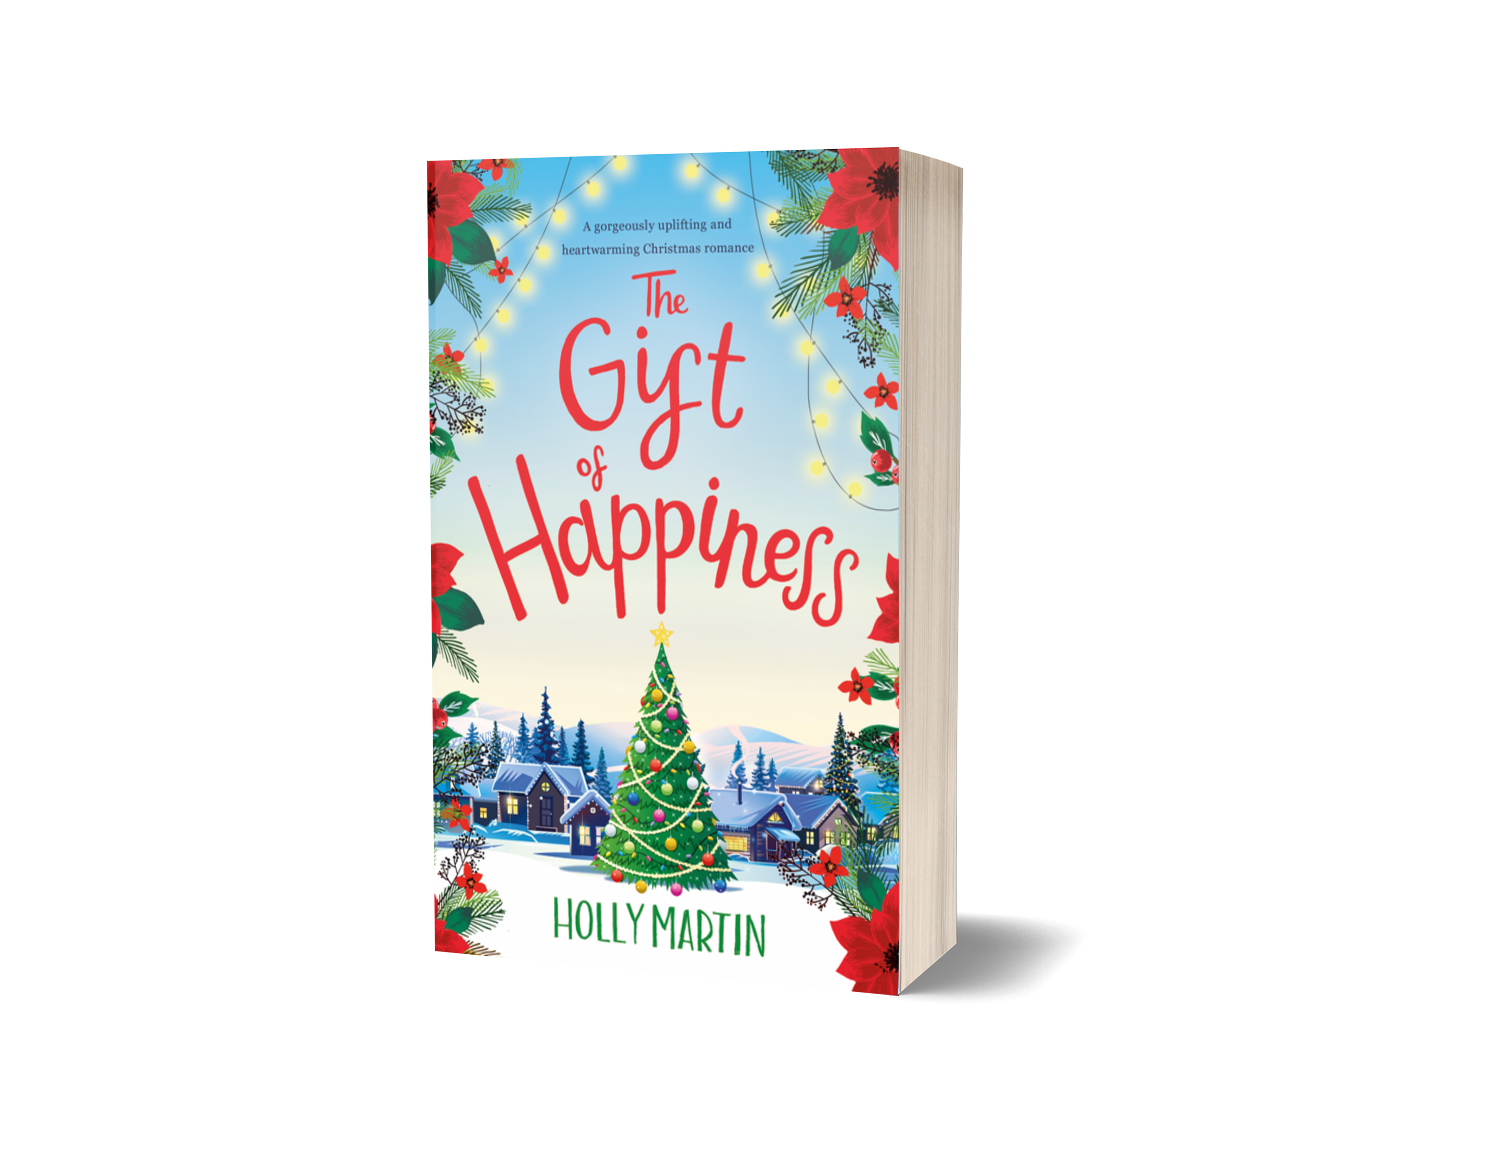 Image of Signed paperback of The Gift of Happiness.